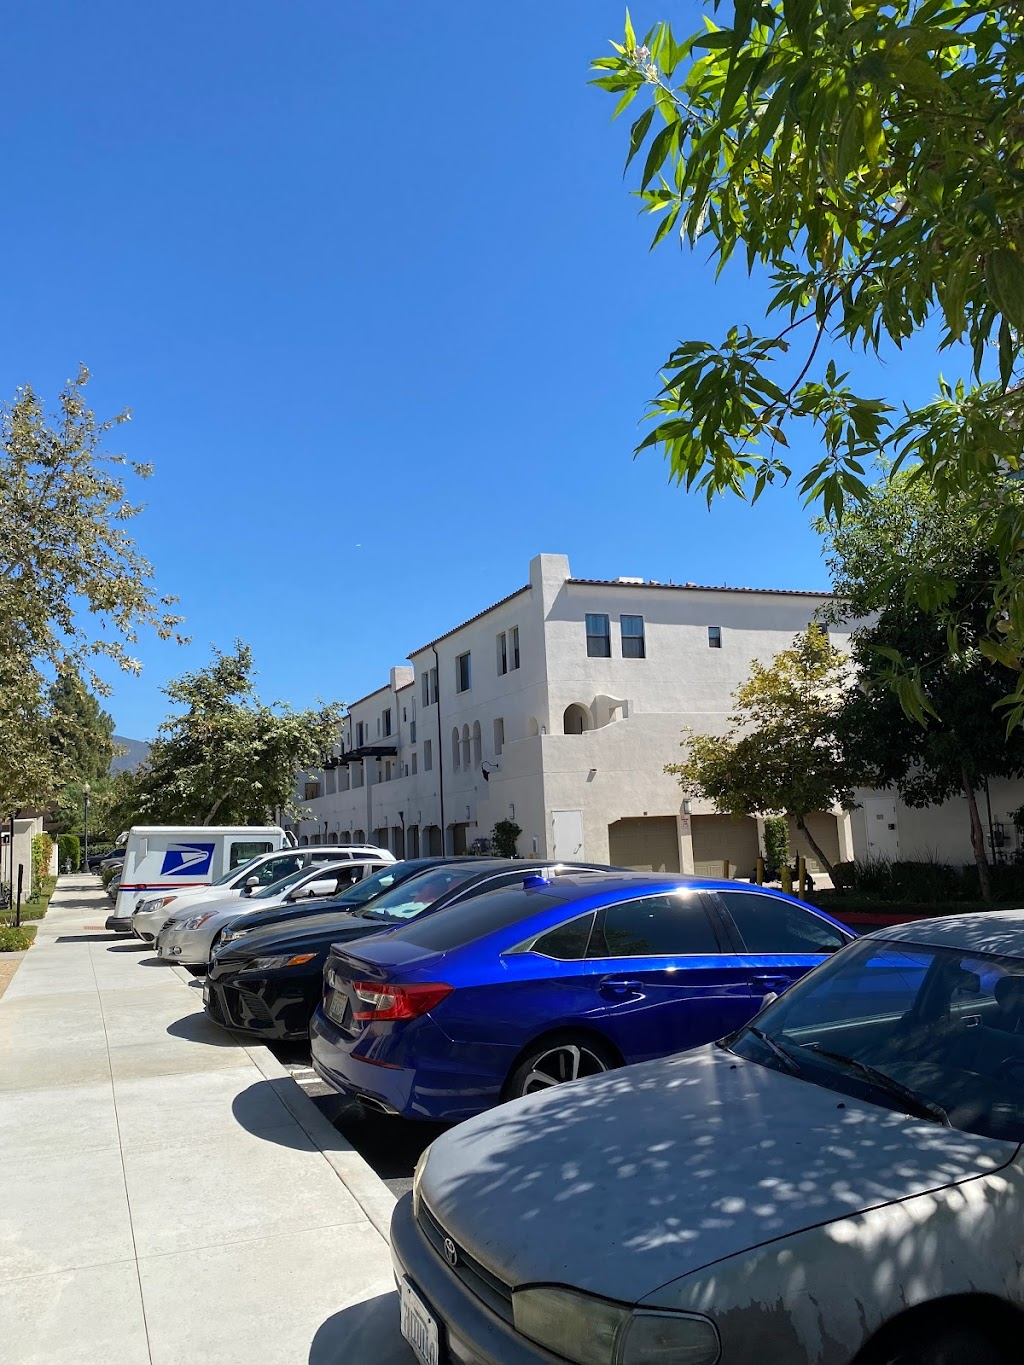 The Paseos at Montclair North - lodging    Photo 9 of 10   Address: 4914 Olive St, Montclair, CA 91763, USA   Phone: (855) 221-0304